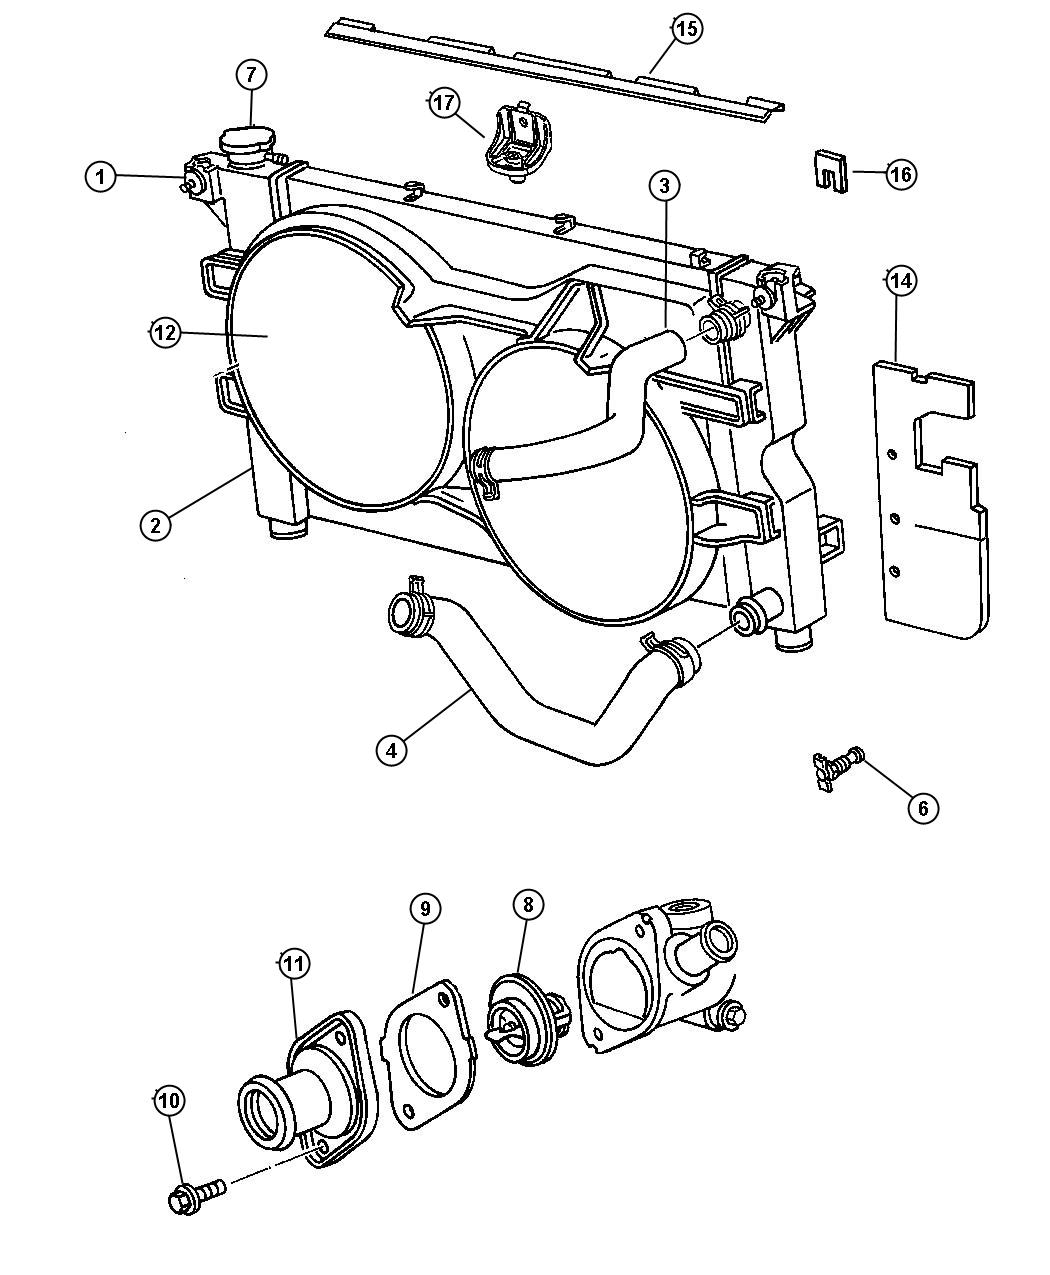 Diagram Radiator and Related Parts 2.4L [2.4L 4 Cyl DOHC 16V SMPI Engine]. for your 2018 Dodge Grand Caravan